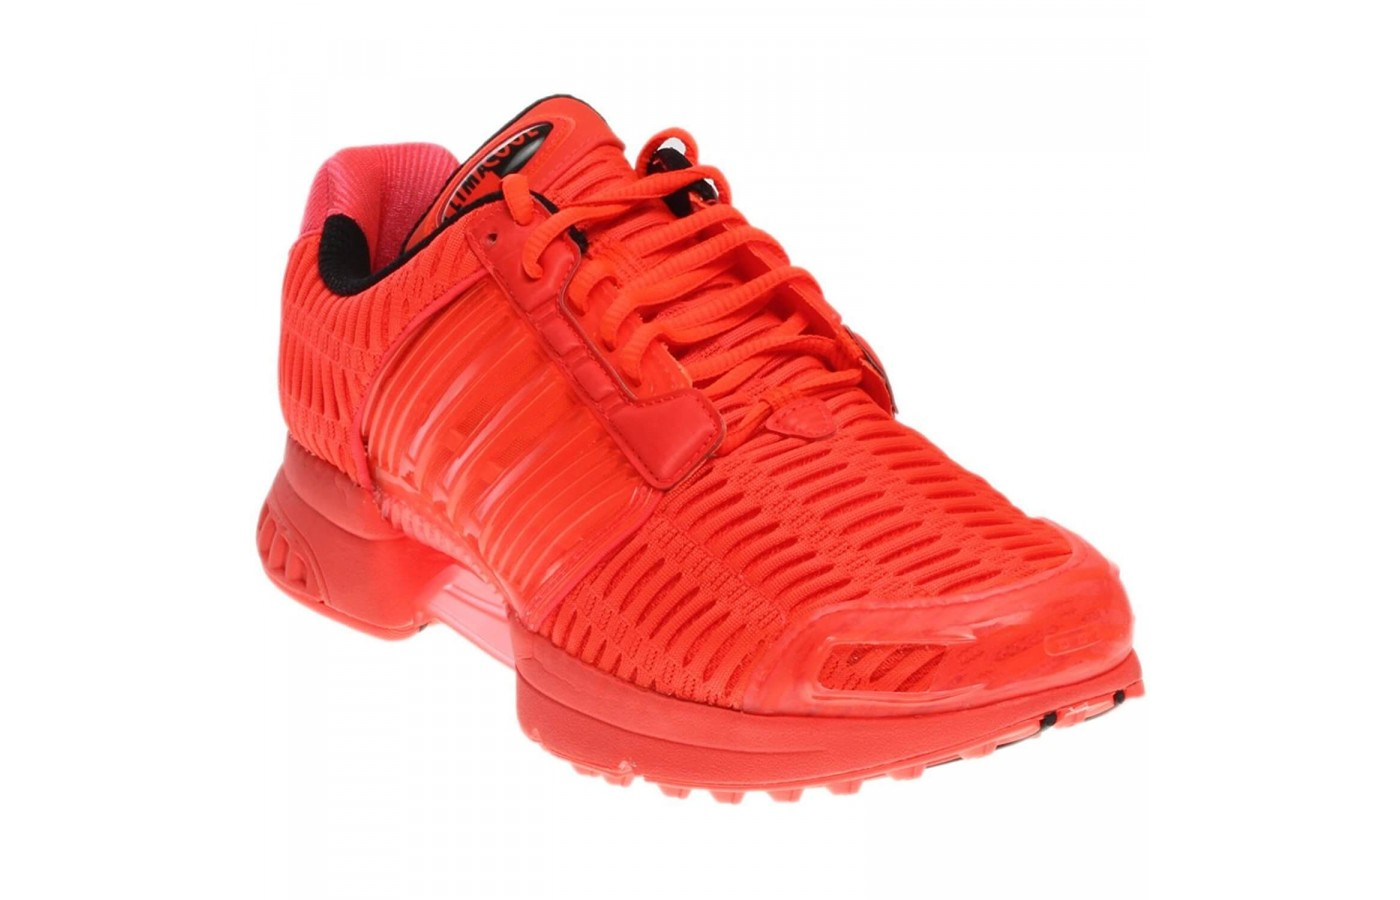 Great forward view of Adidas ClimaCool 1